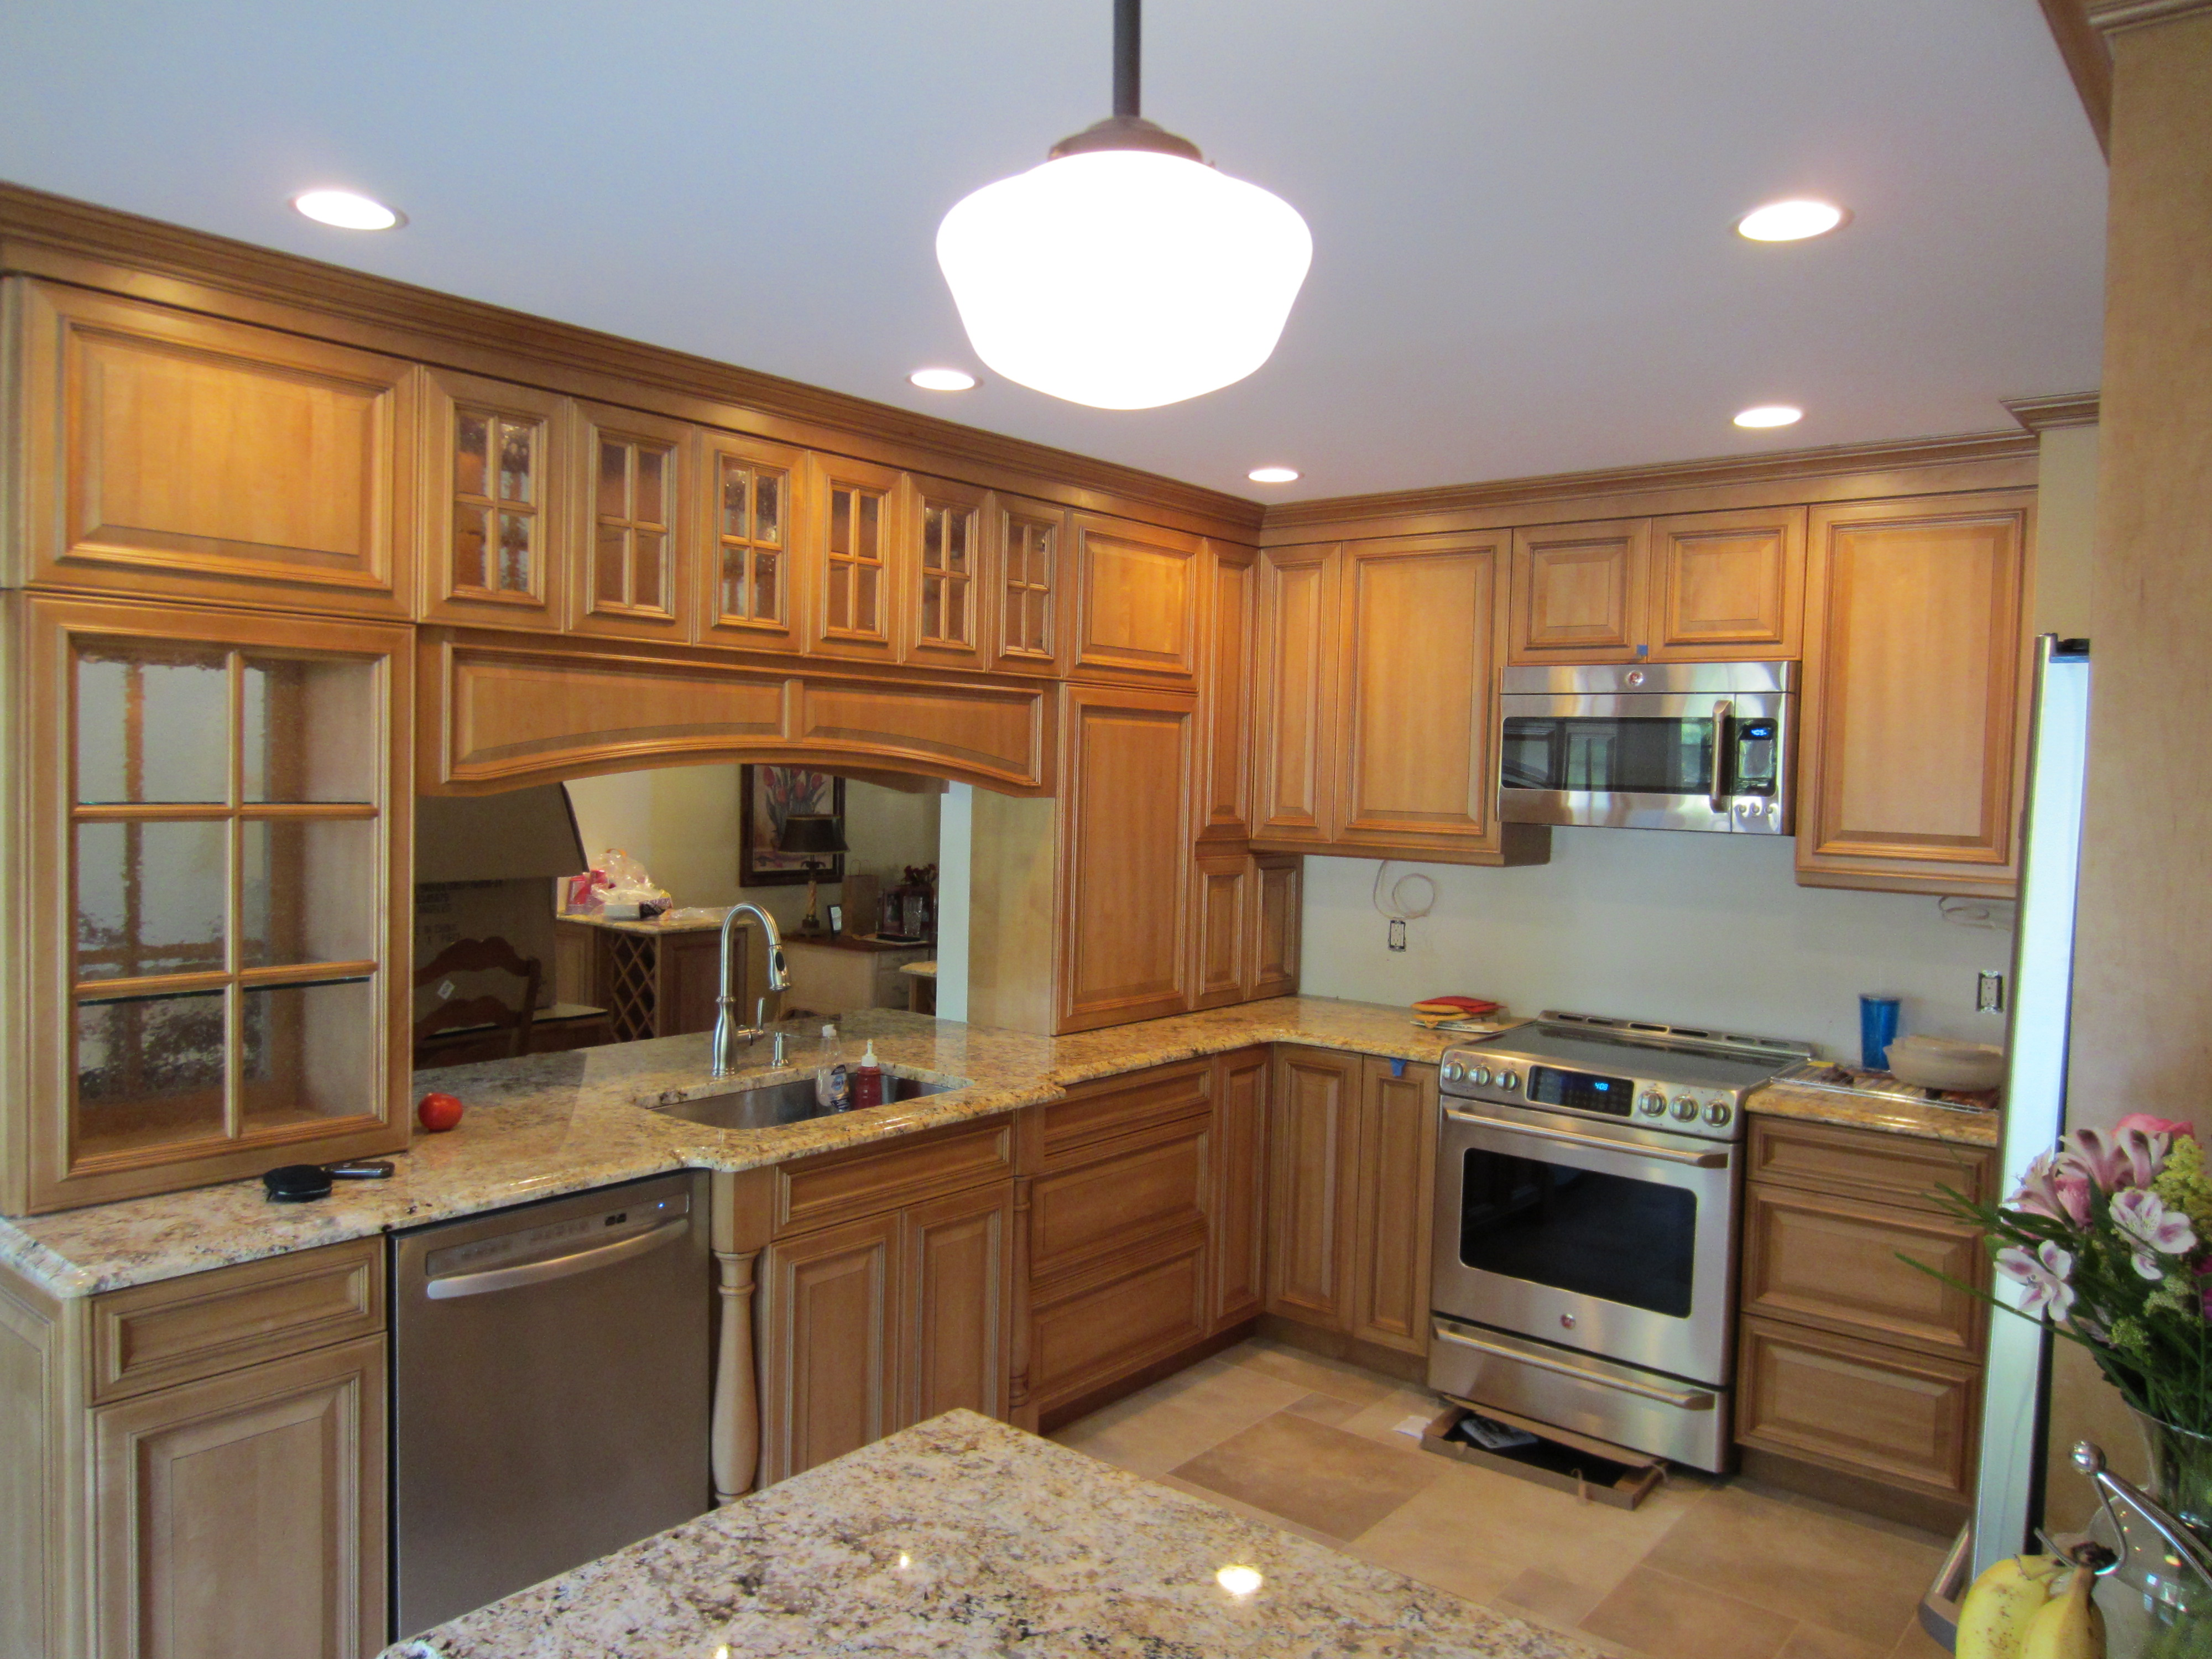 Kitchen After Renovation- WOW!